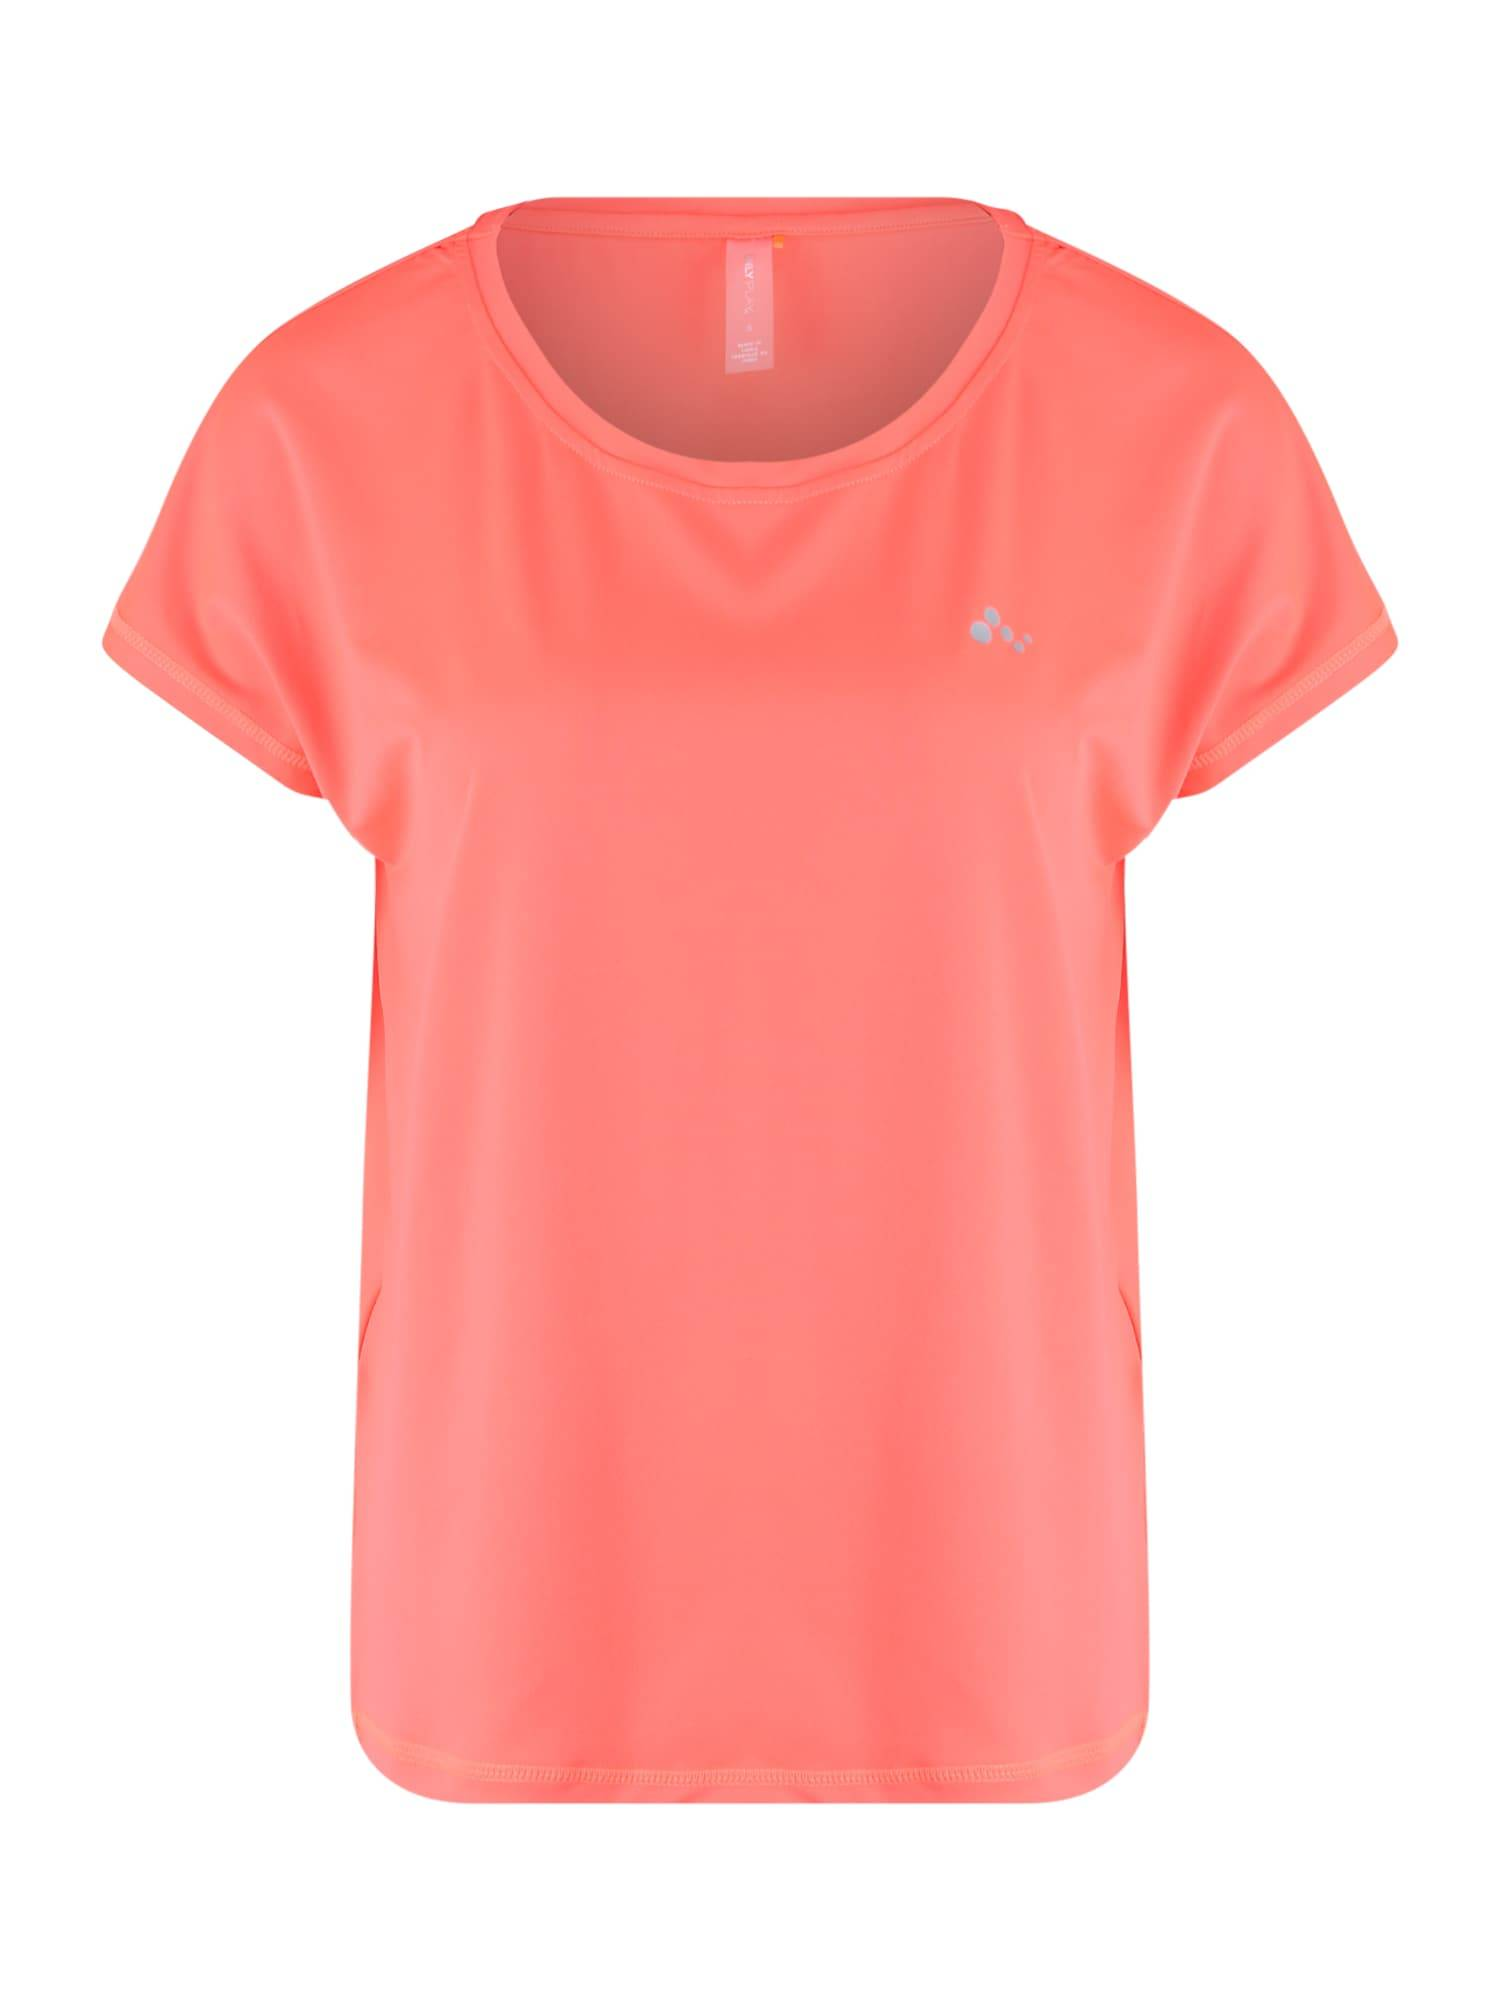 ONLY PLAY T-shirt fonctionnel 'Aubree'  - Orange - Taille: XS - female